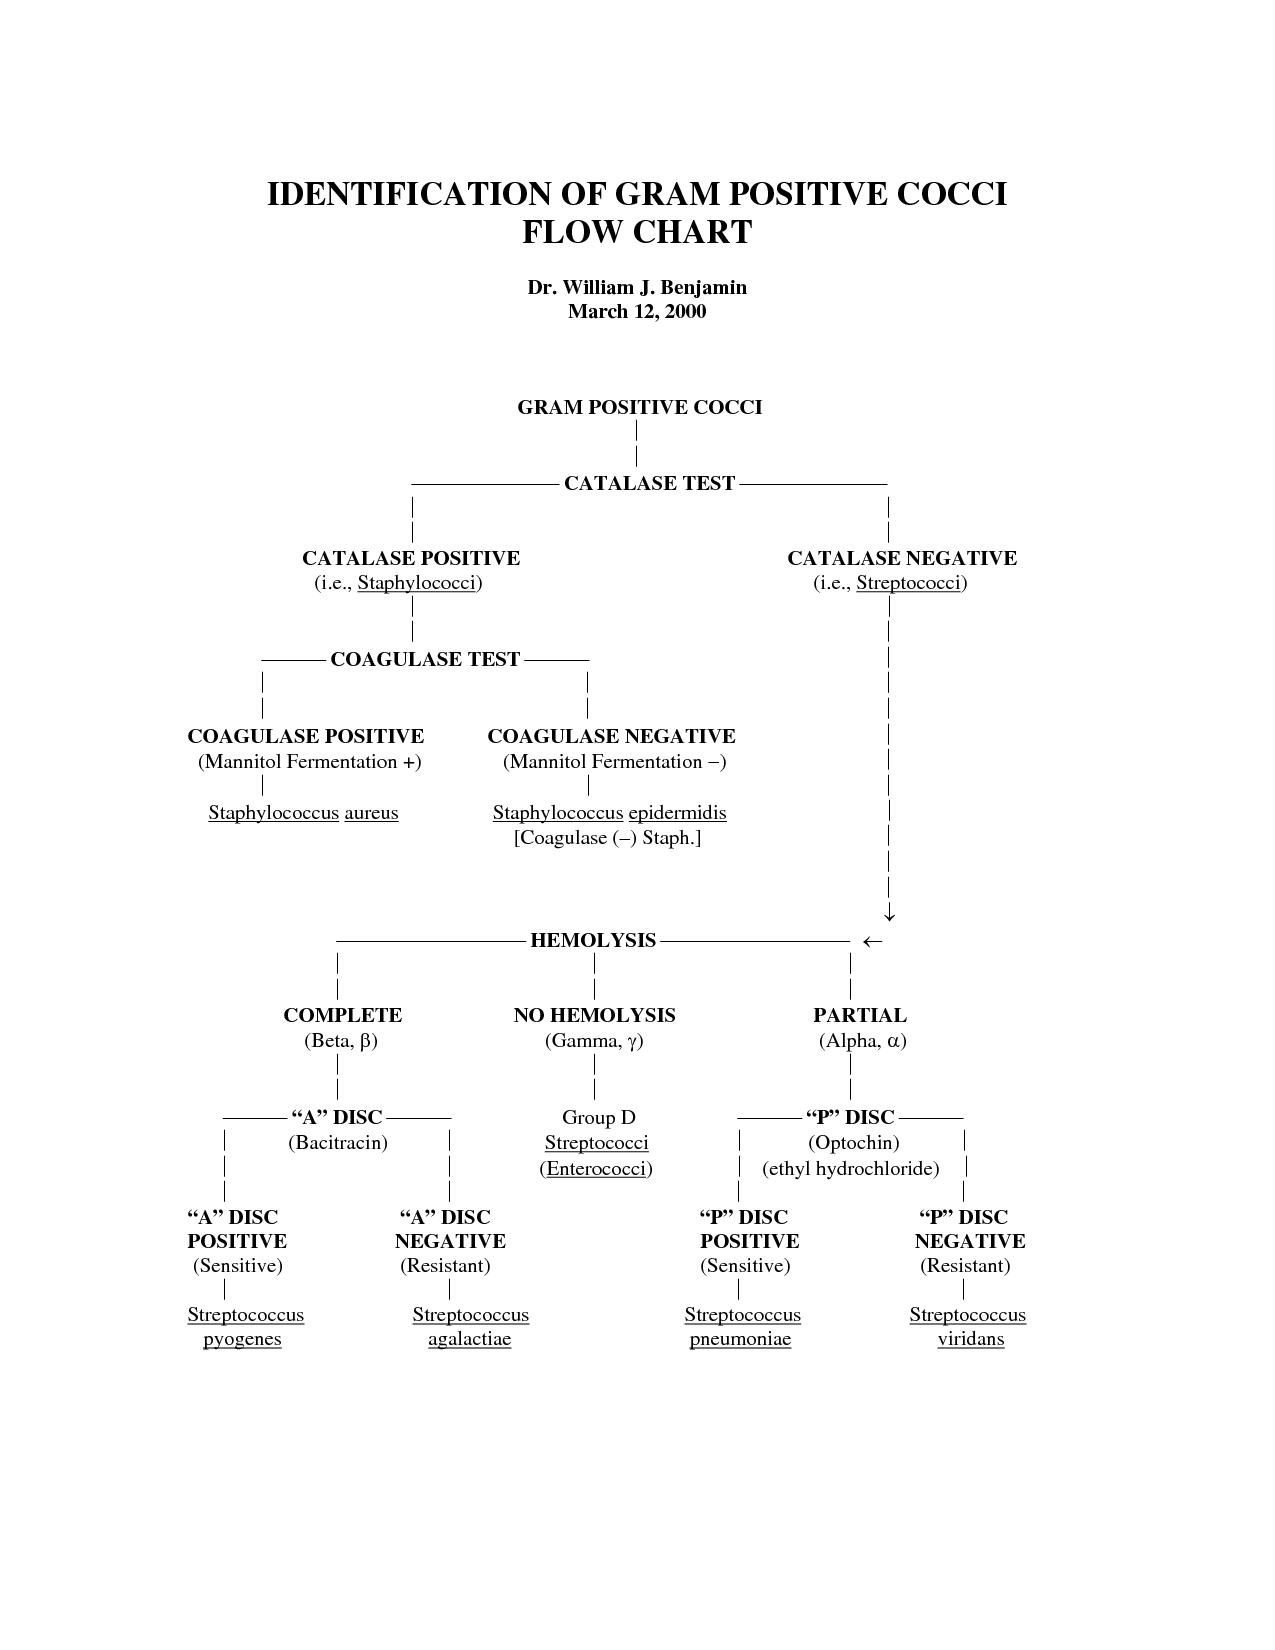 Gram negative bacilli flowchart identification of positive cocci flow chart also rh pinterest